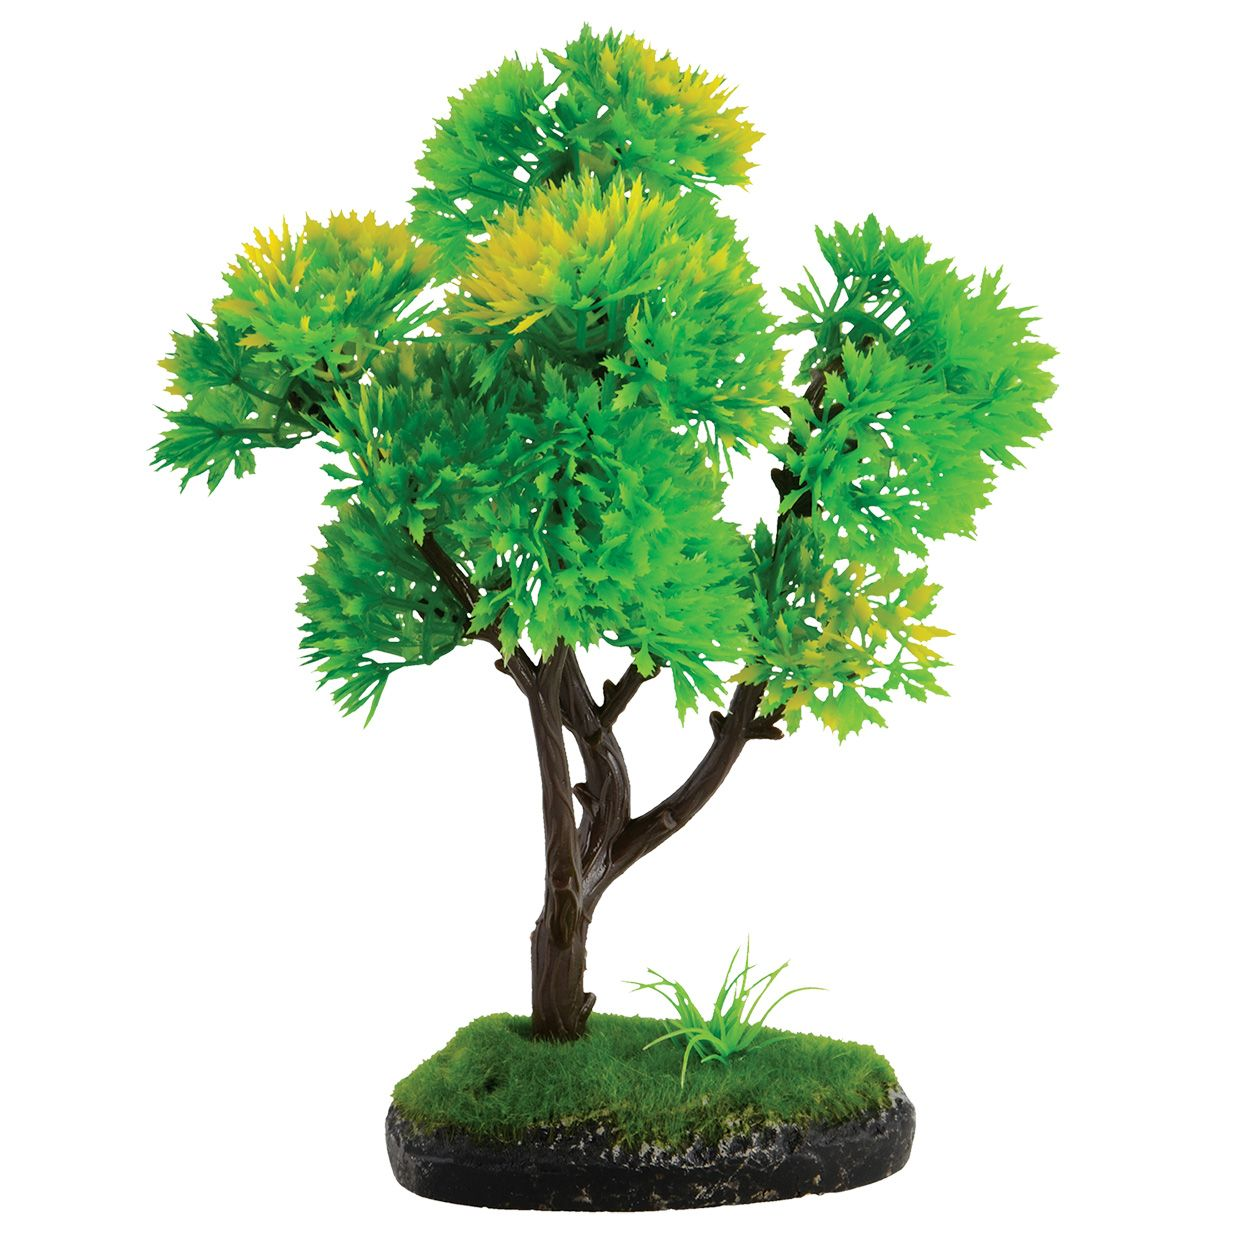 Underwater Treasures Bonsai Green and Yellow Tree - 7 inch